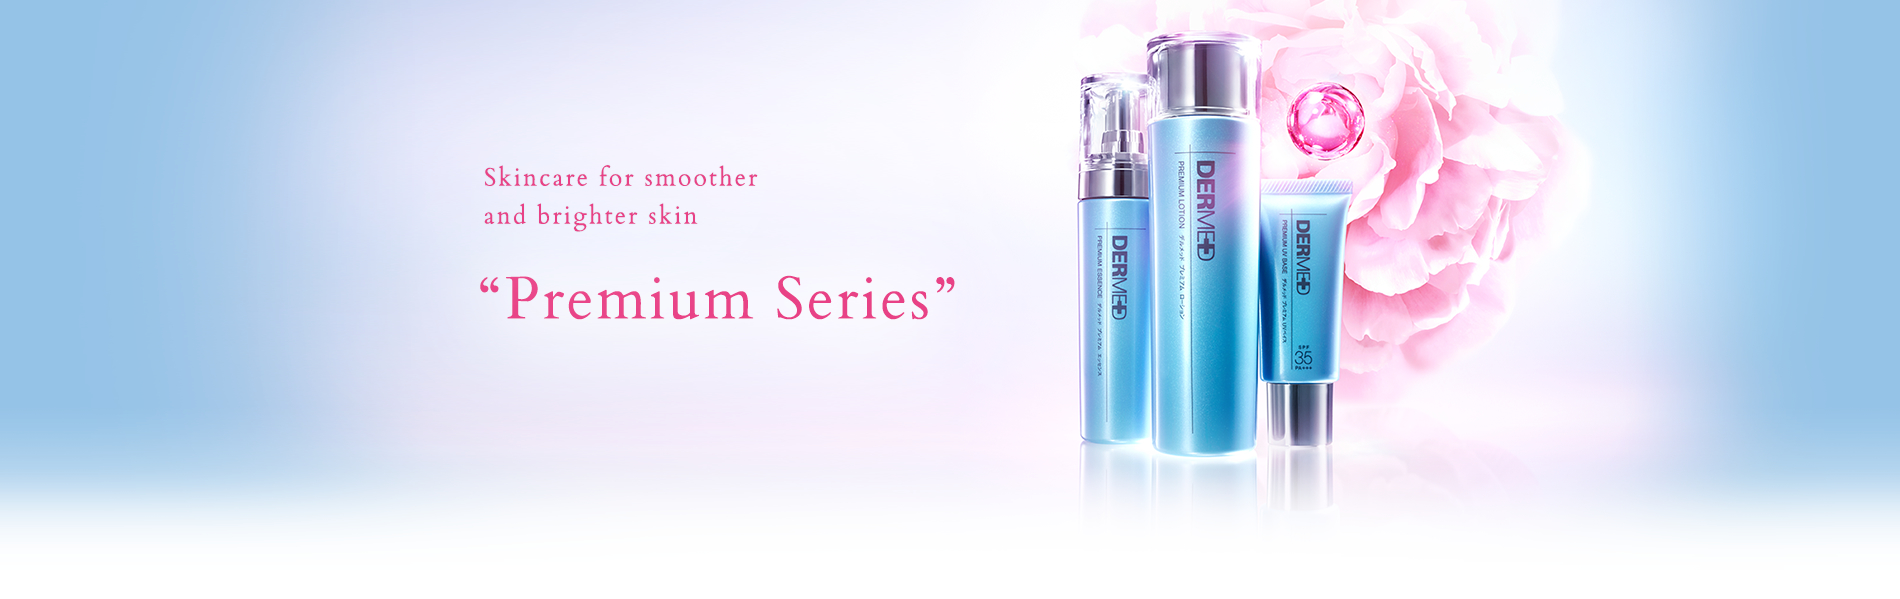 "New Skincare for smoother and brighter skin ""Premium Series"" Relaunch!"